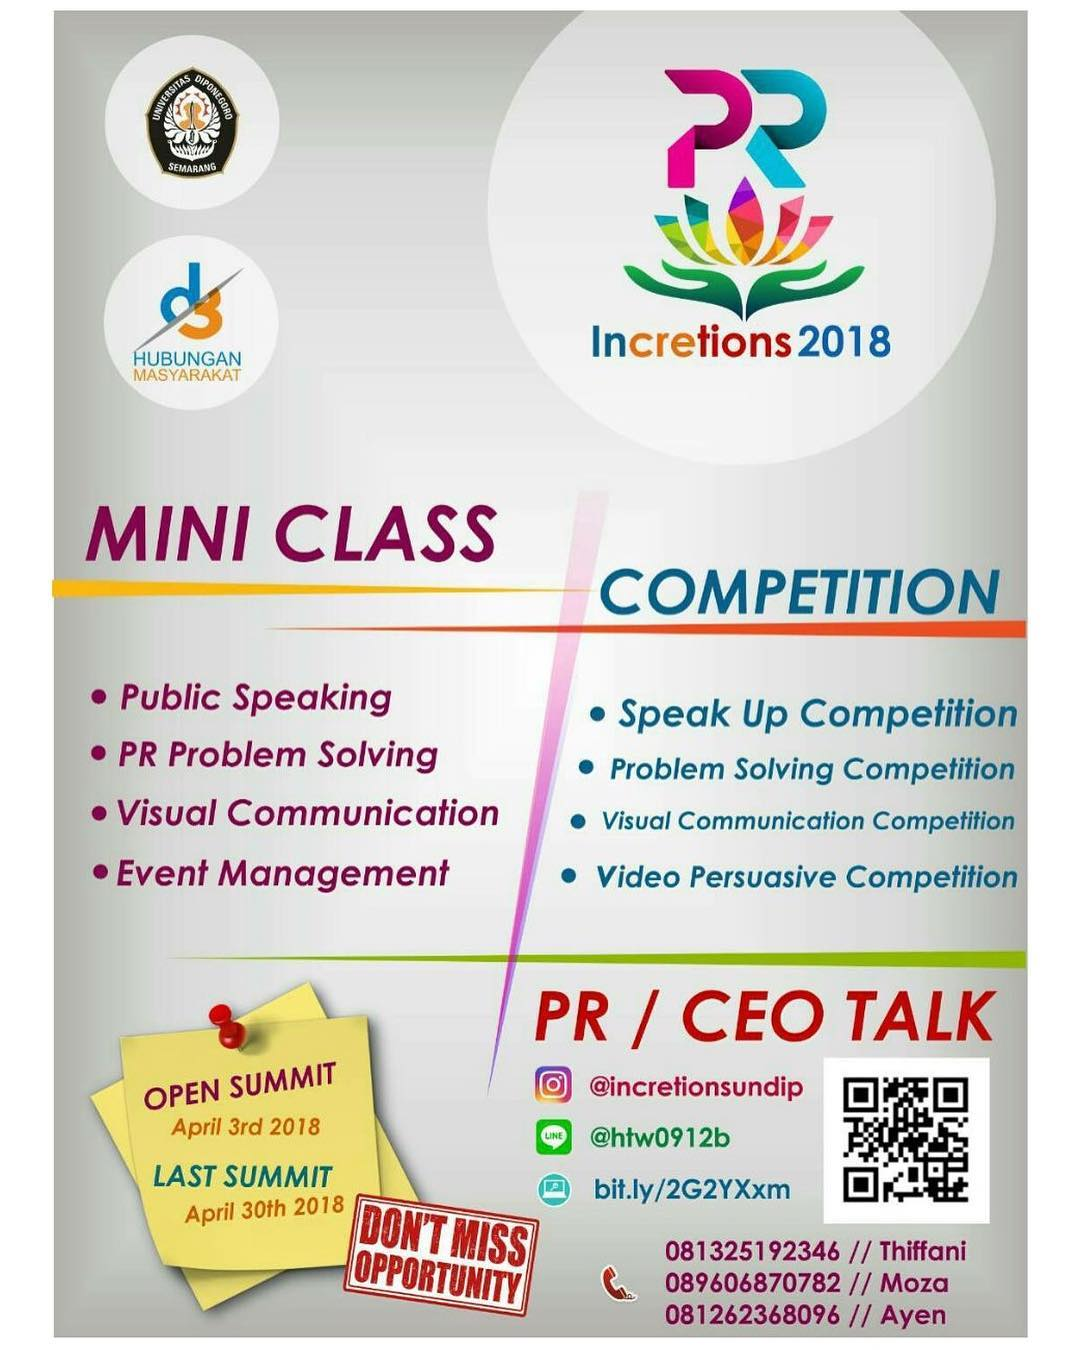 EVENT SEMARANG- INCRETIONS 2018